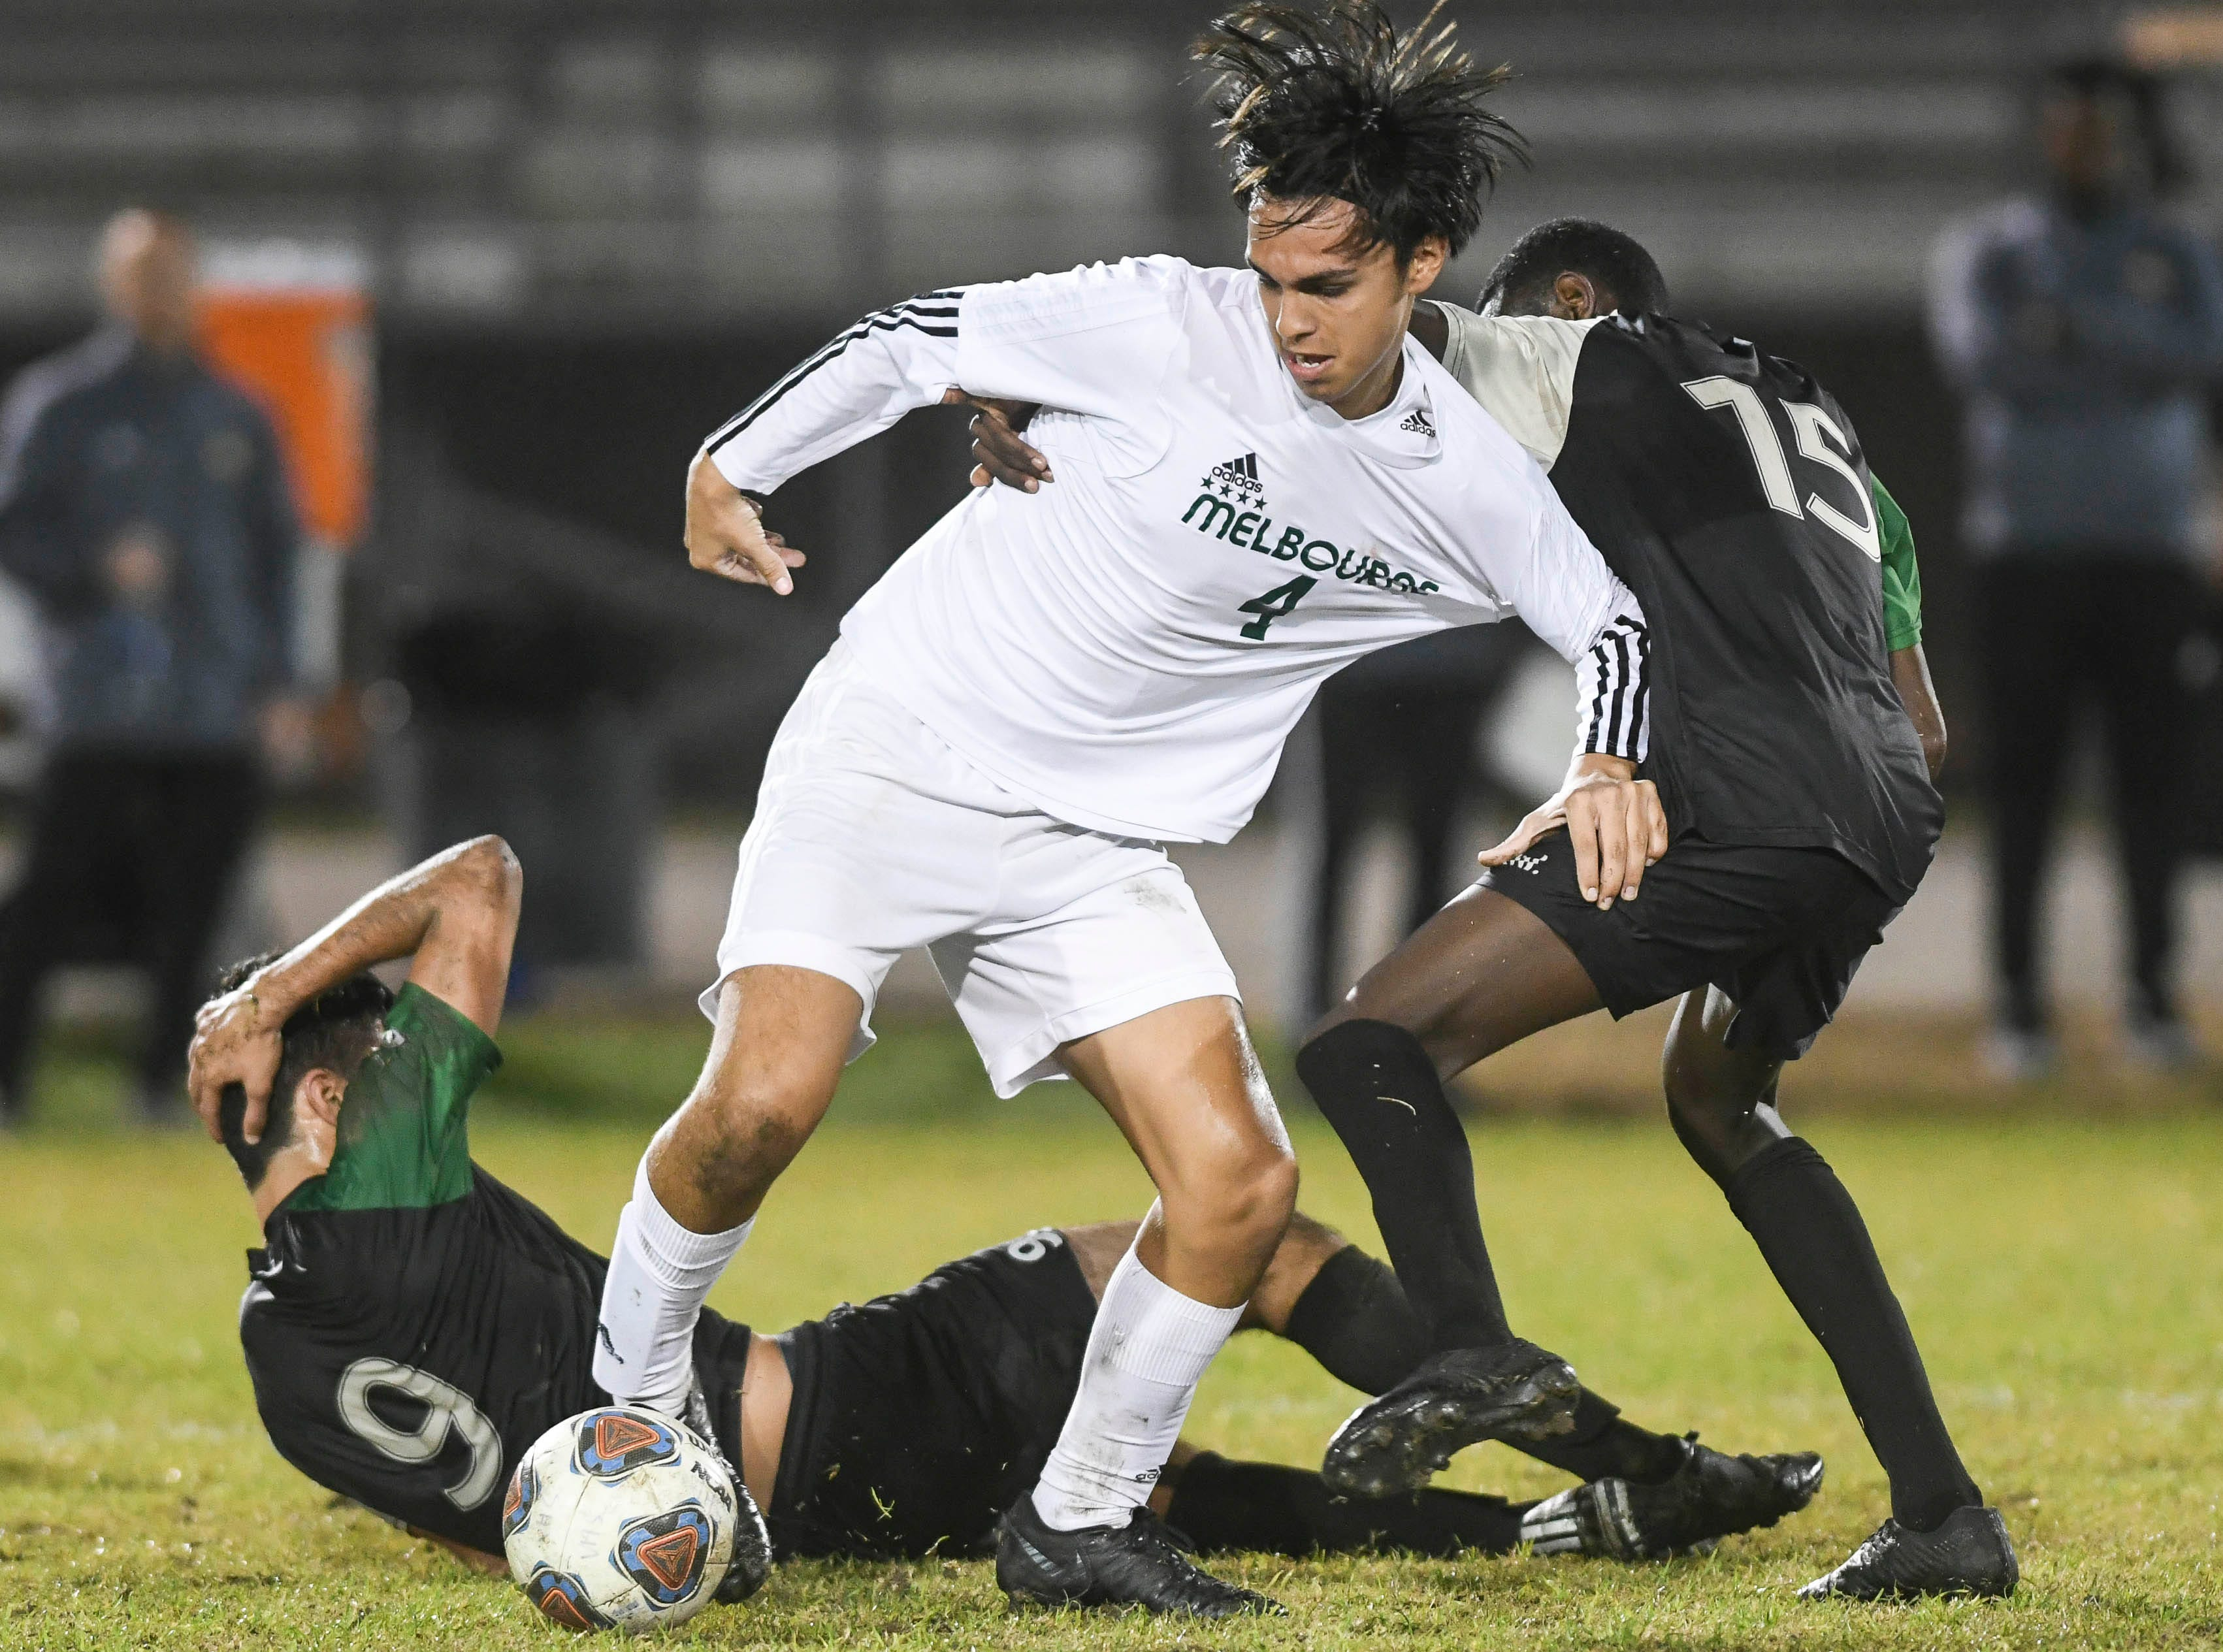 Nick Martinez of Melbourne (4), Kia Mohajeri of Viera and Nyles Lockridge of Viera (15) scramble for the ball during Friday at Viera High.'s Class 4A, District 6 championship game.